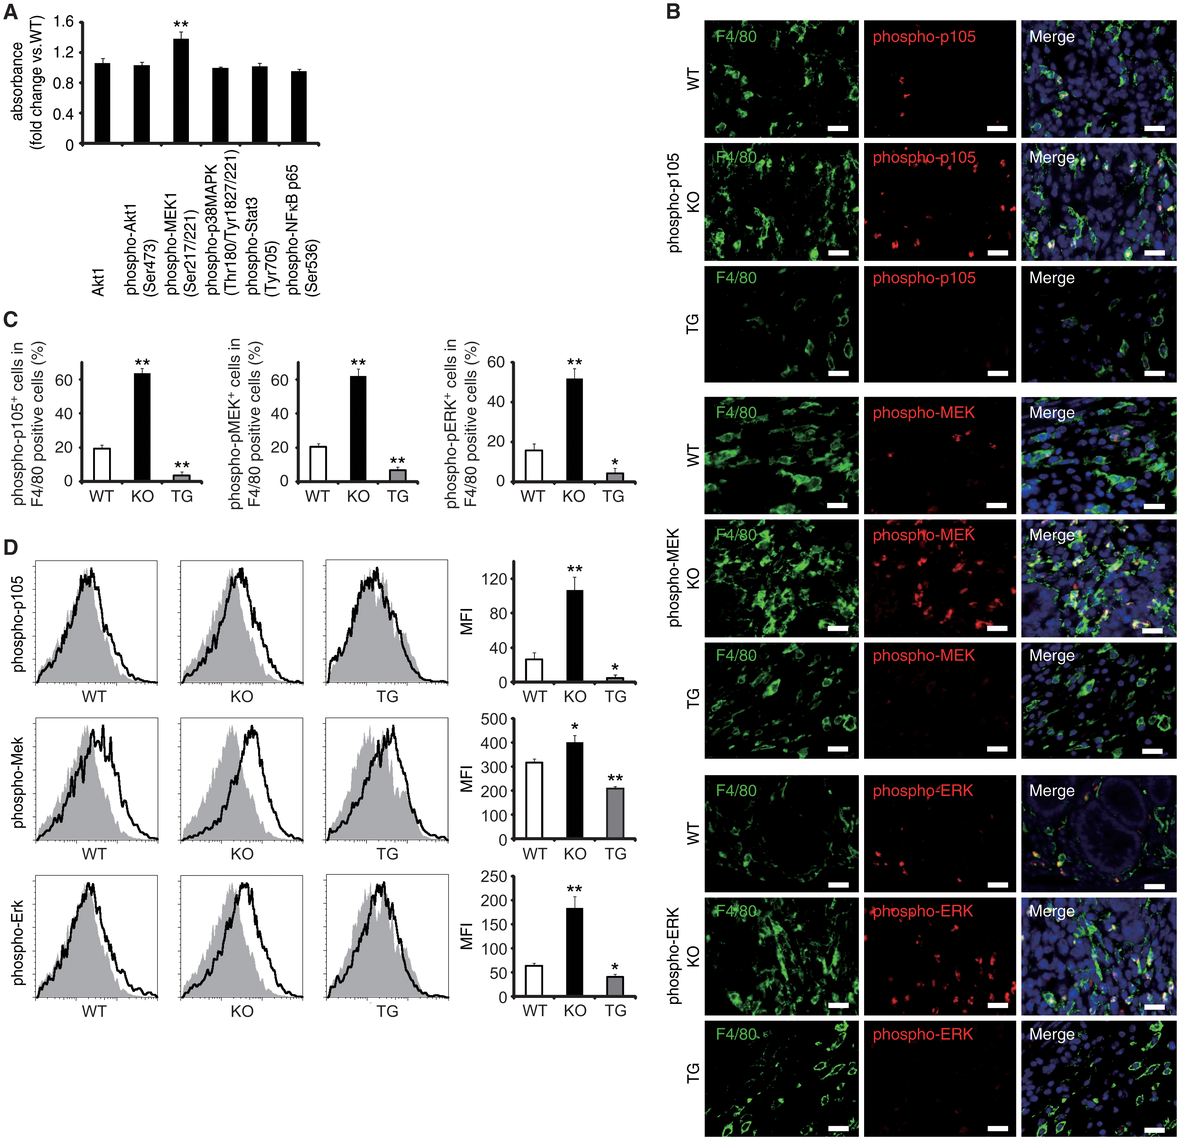 EPRAP inhibits p105 phosphorylation and MEK–ERK activation in stromal macrophages with DSS treatment.